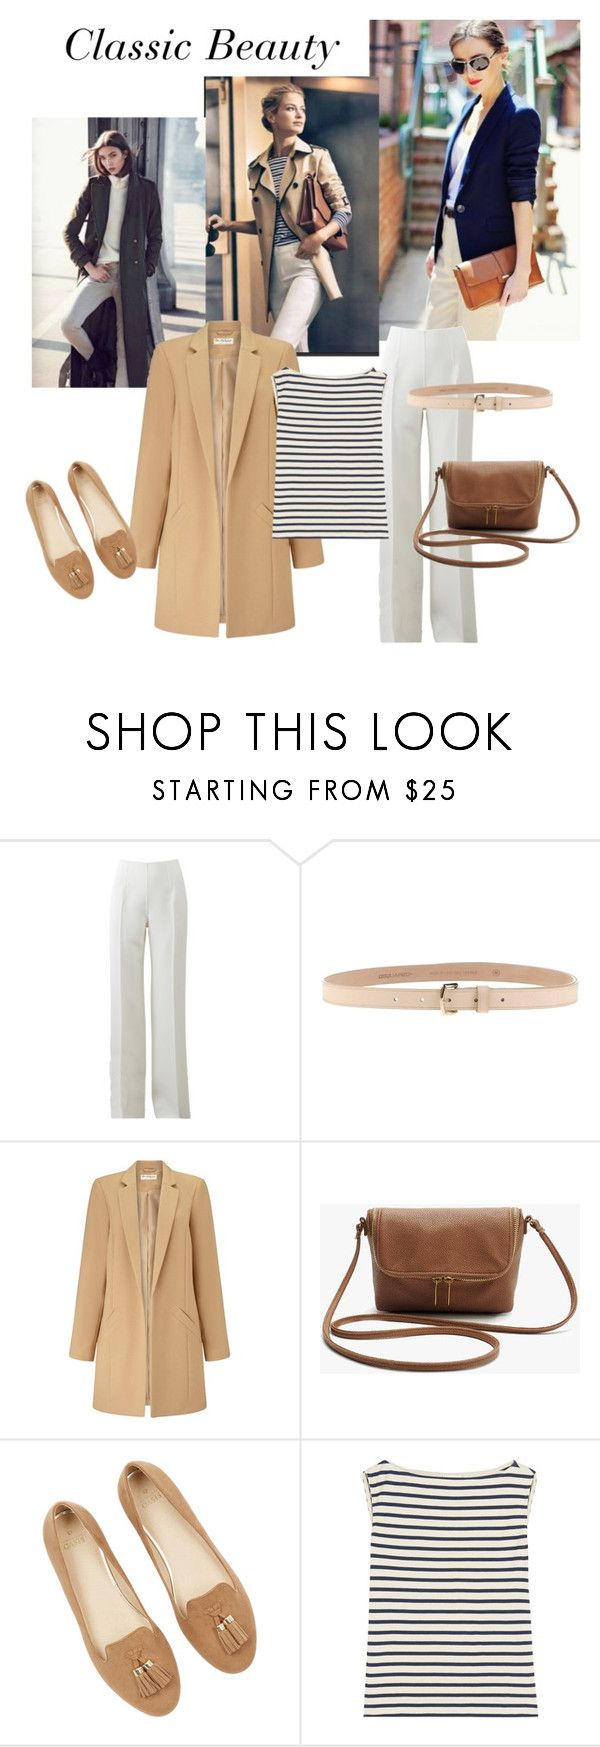 """Classic personality styling rectangle body shape"" by monicazelin on Polyvore featuring Michael Kors, Dsquared2, Miss Selfridge and Yves Saint Laurent"